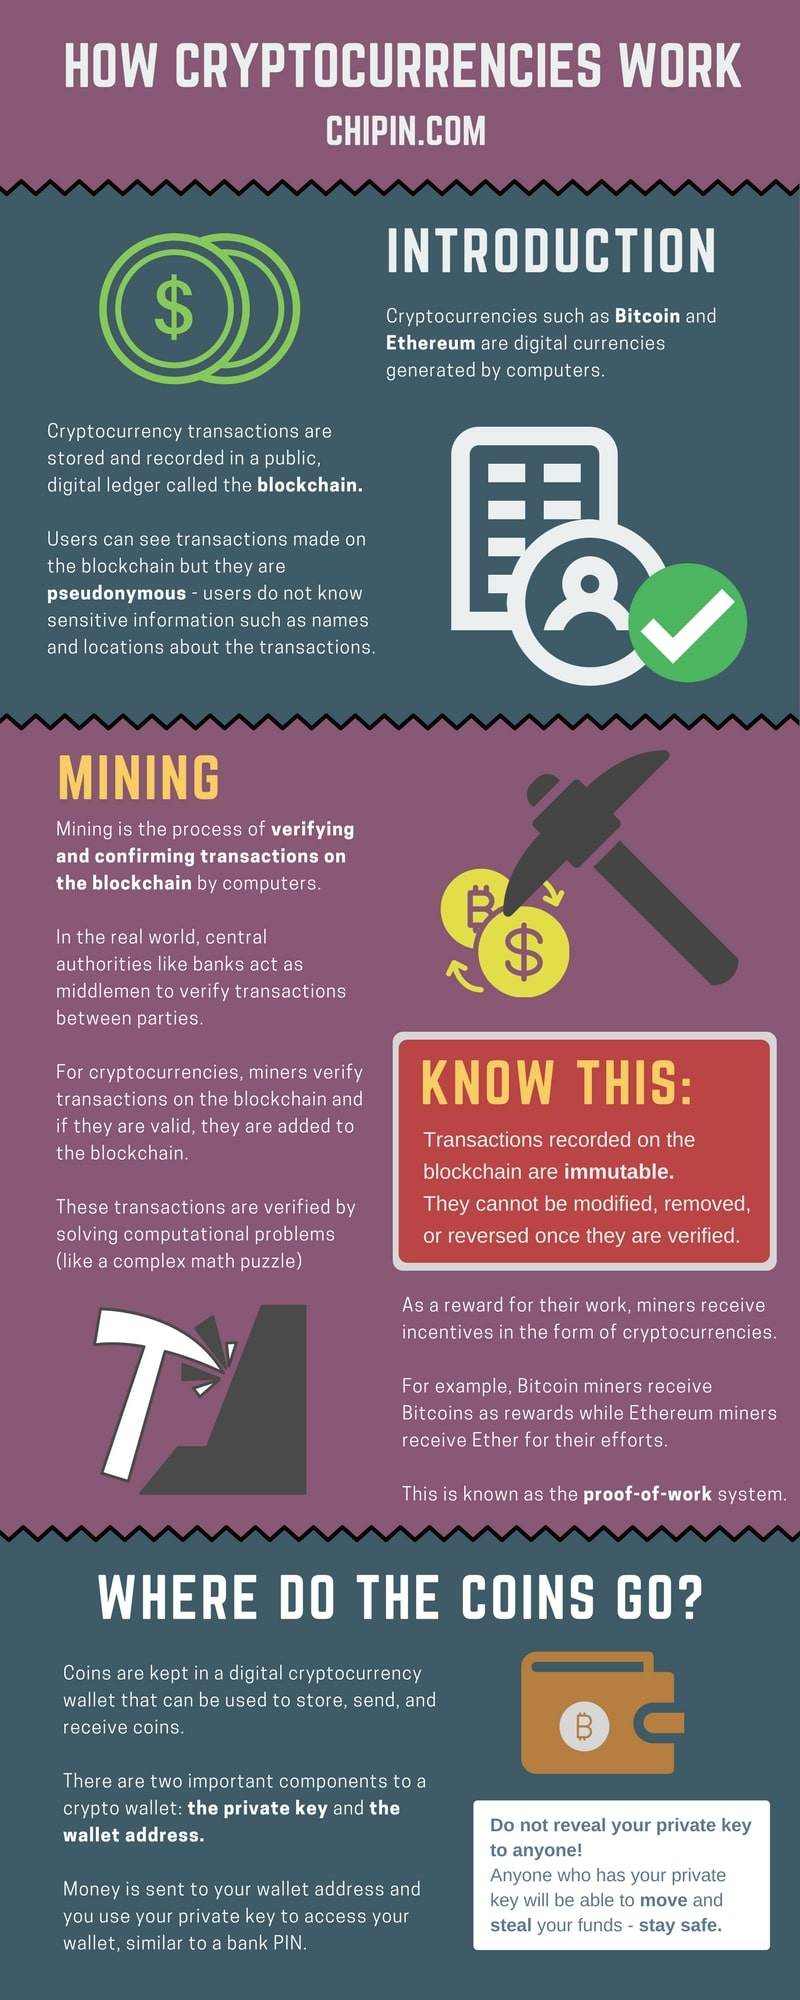 How Cryptocurrencies Work Infographic